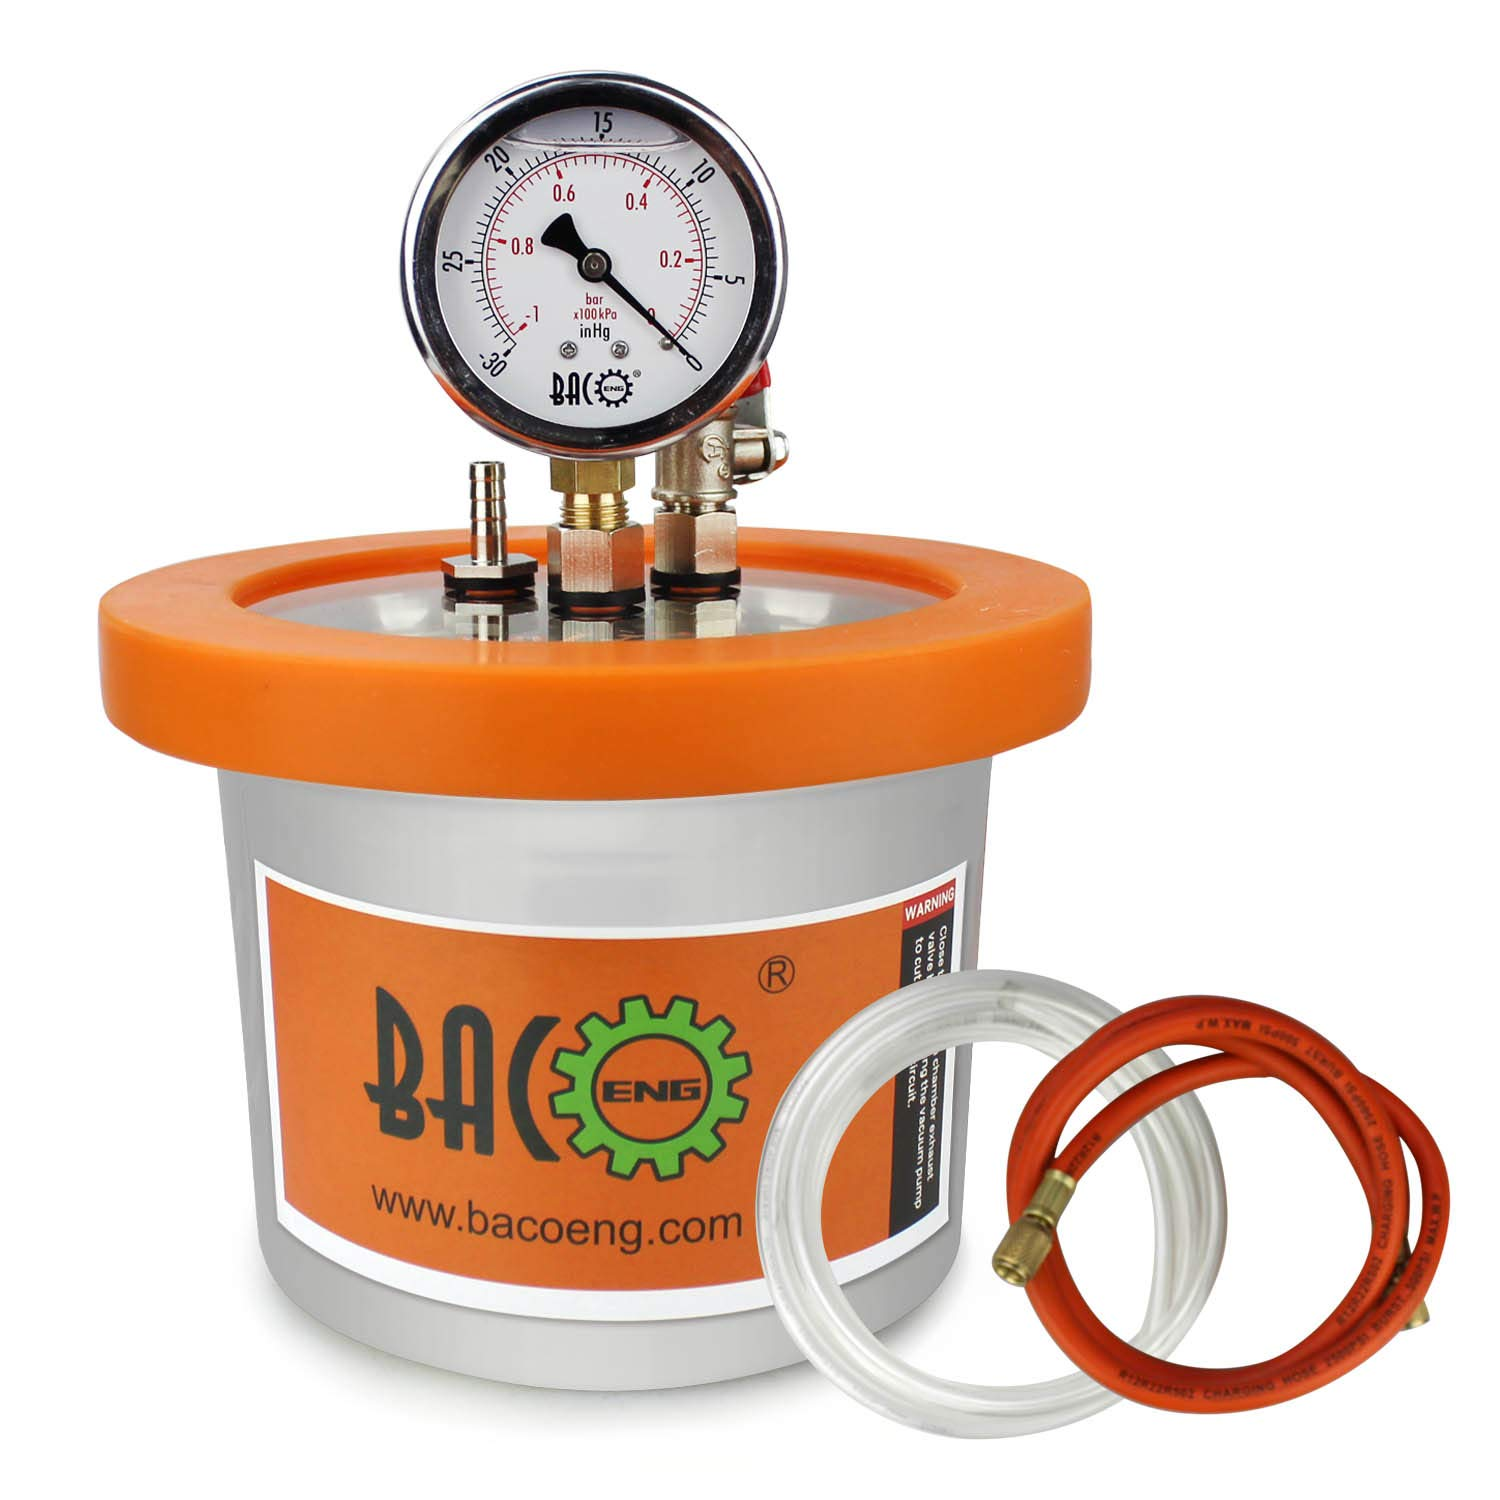 BACOENG 2 QT Stainless Steel Resin Trap Vacuum Degassing Chamber (3 Gallon/1.2 QT/2 QT Available) by BACOENG